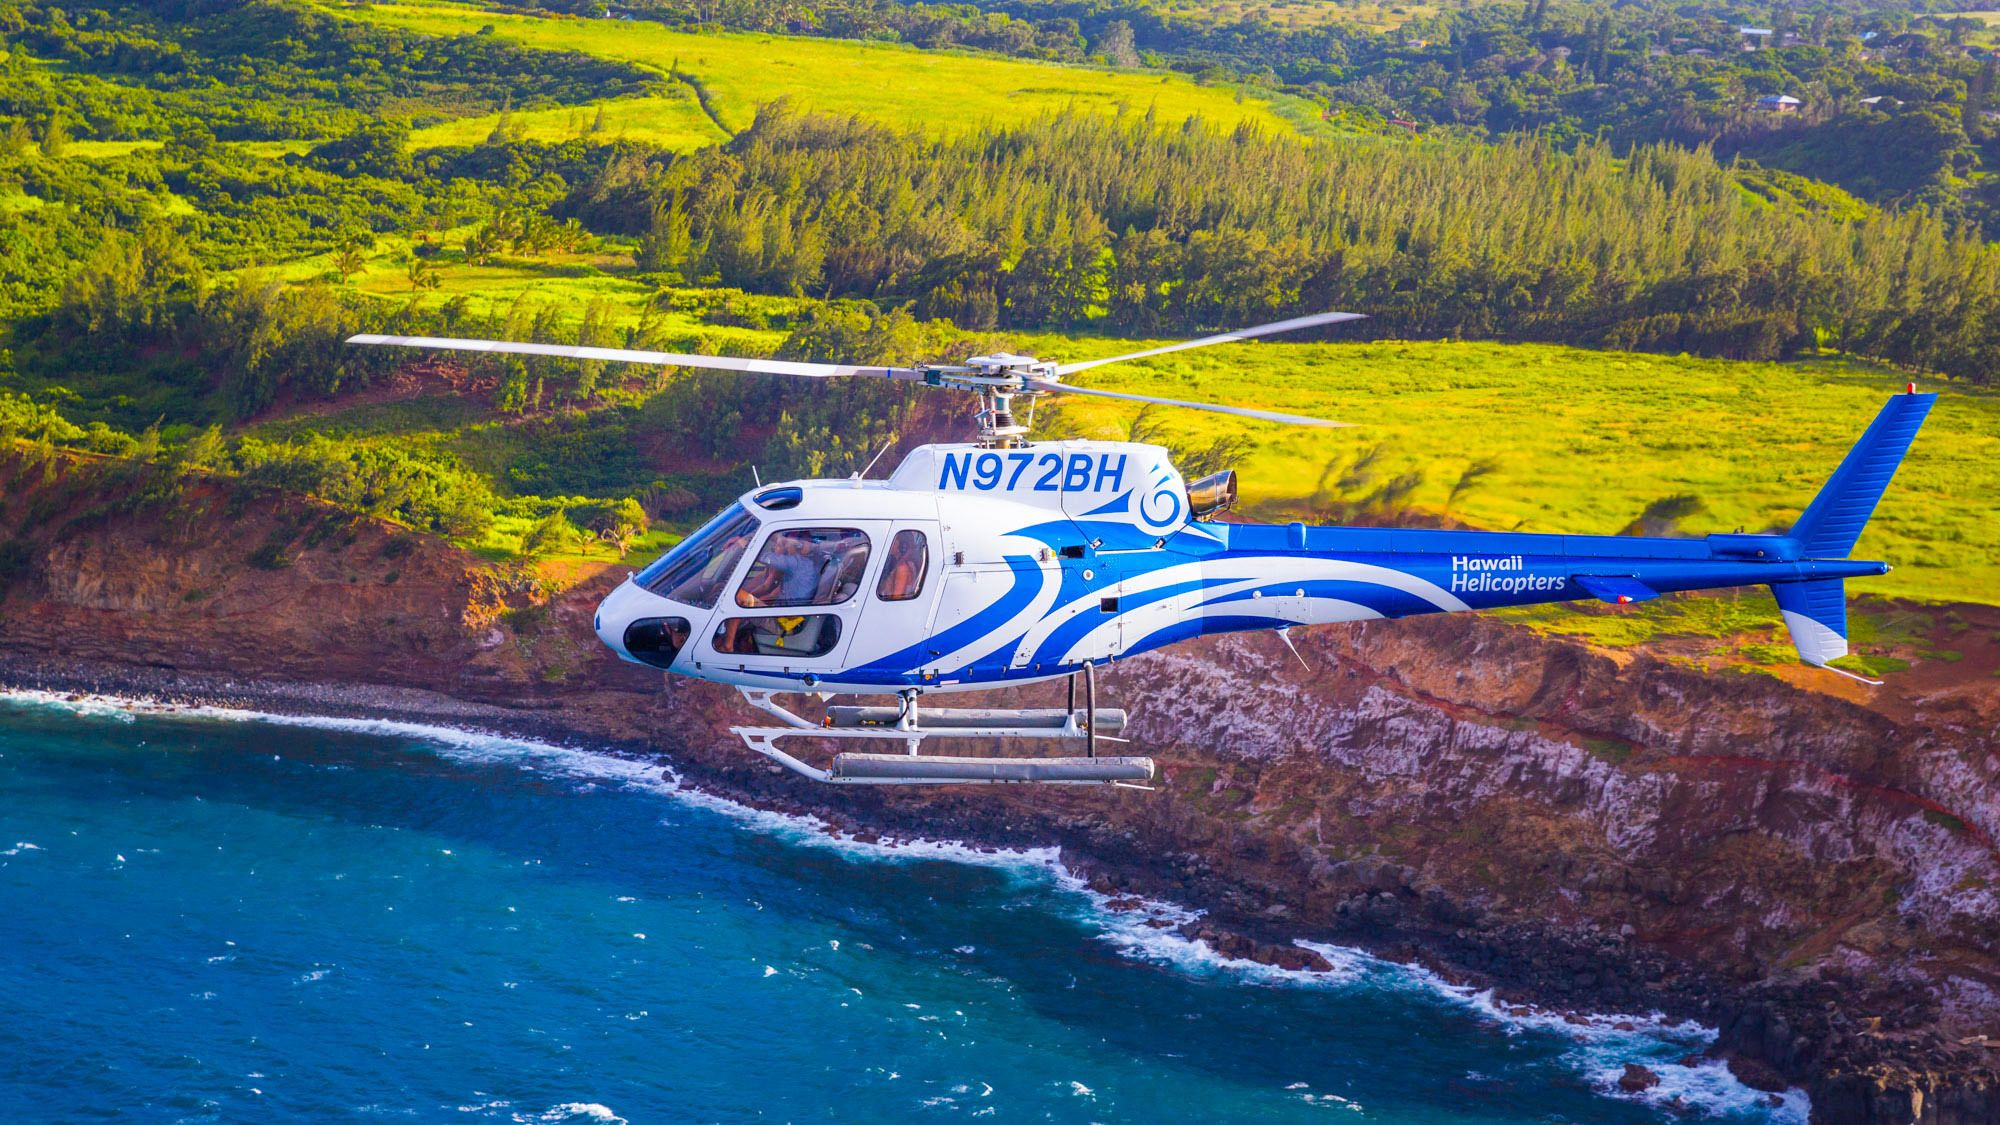 Helicopter flying over Maui